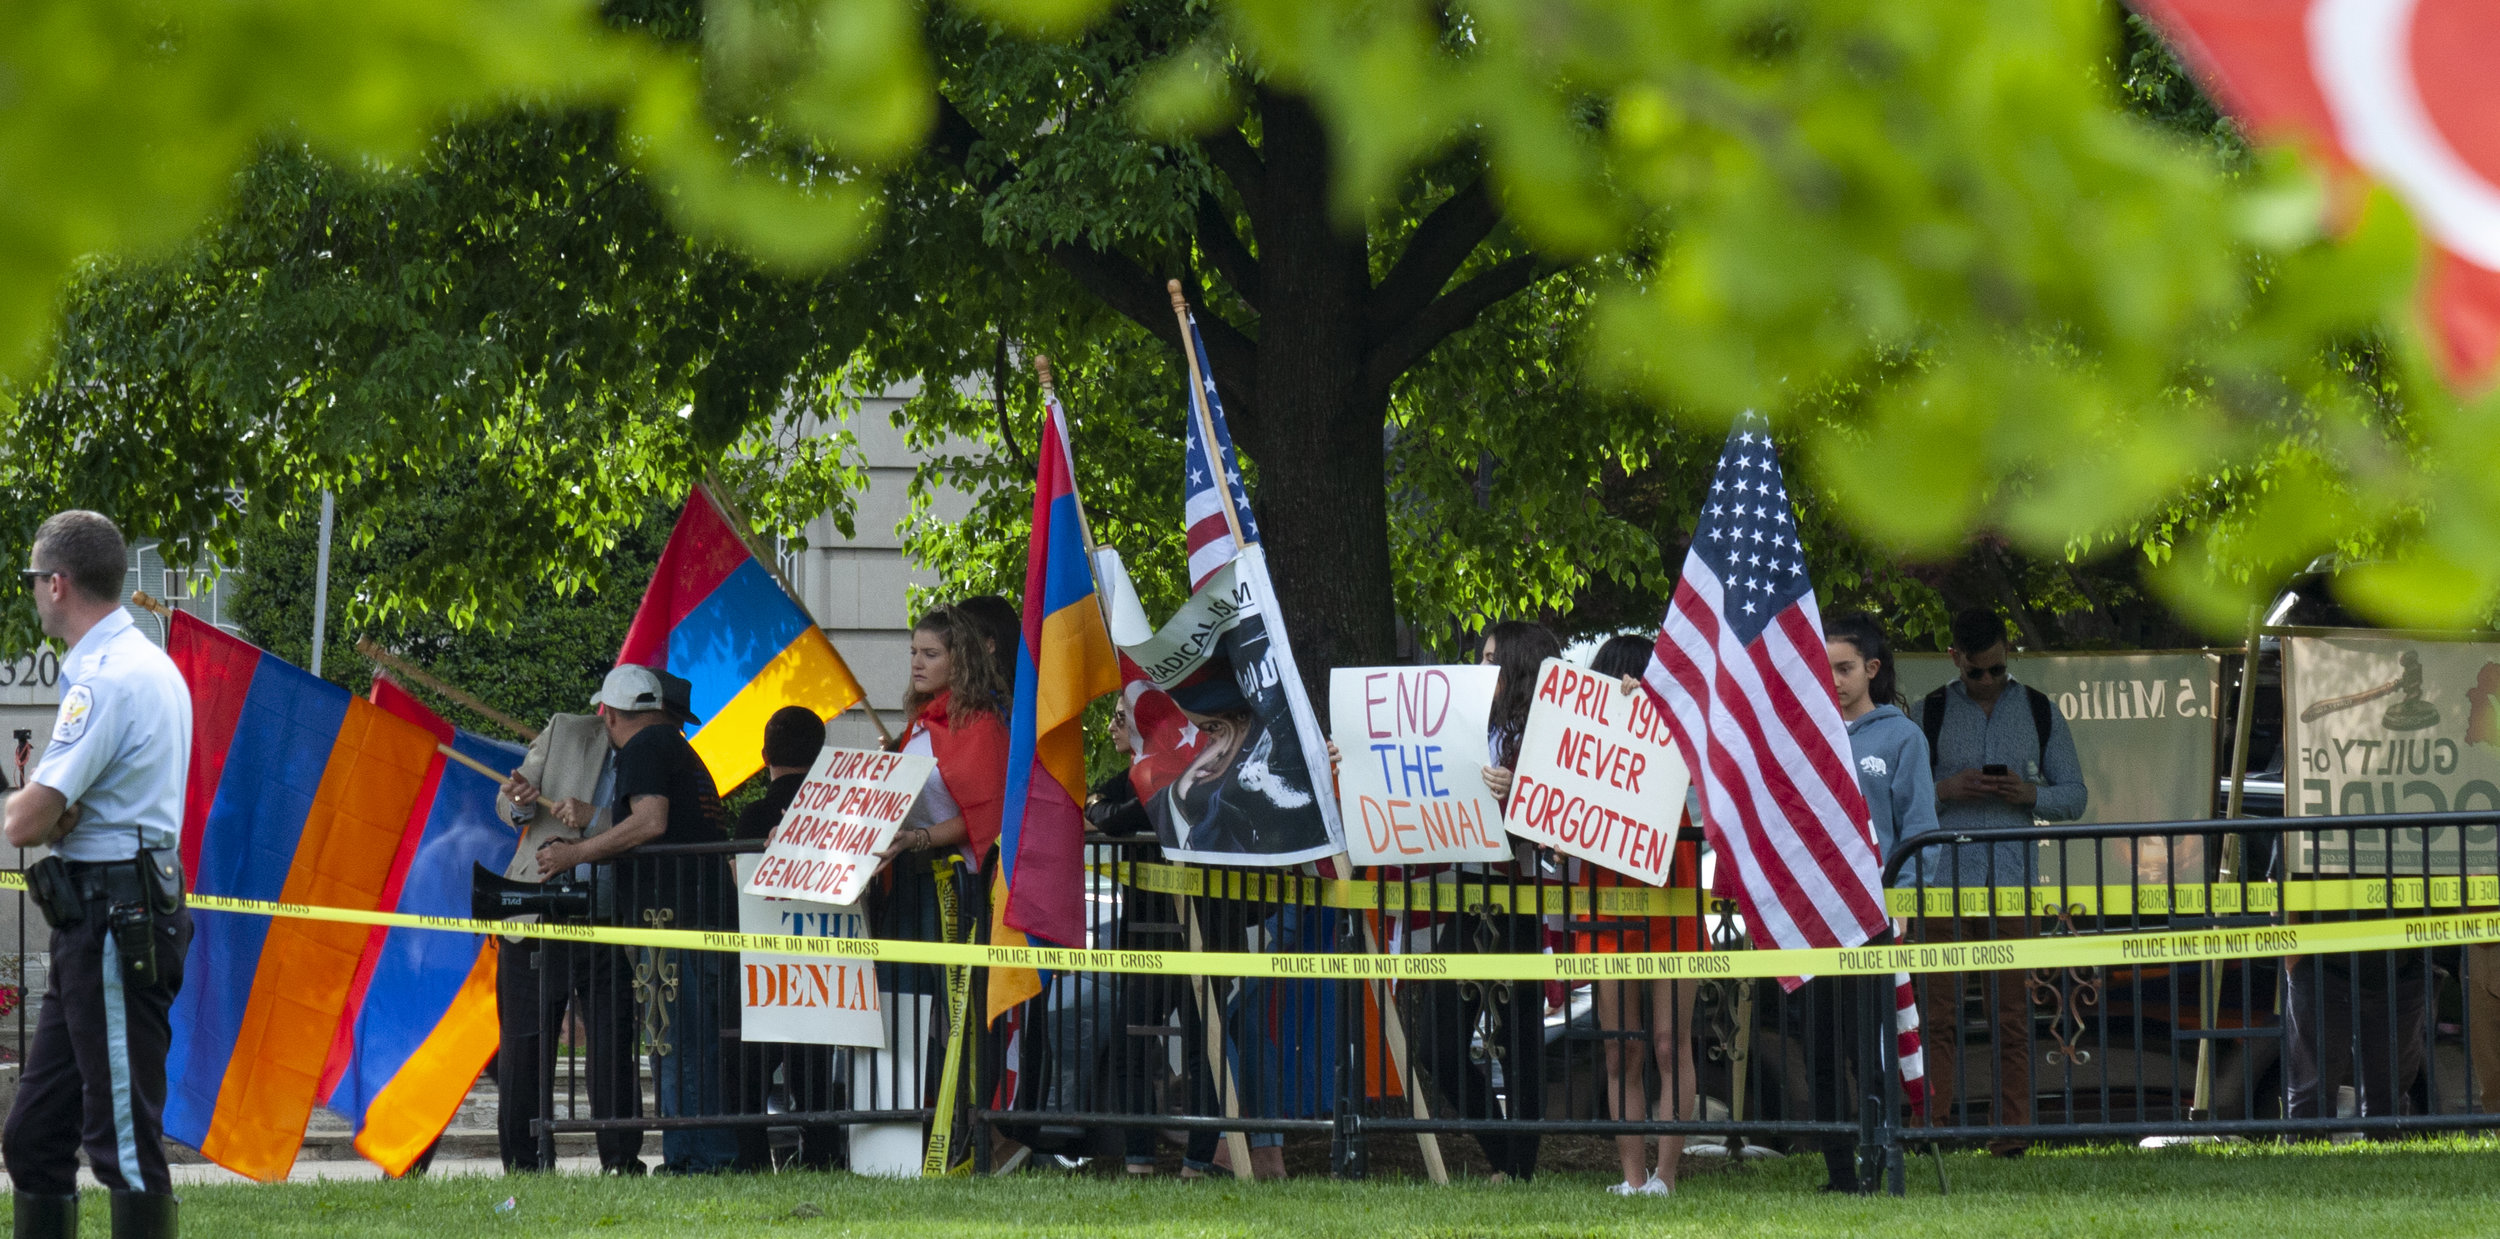 Armenian Protest - Washington, DC 2019